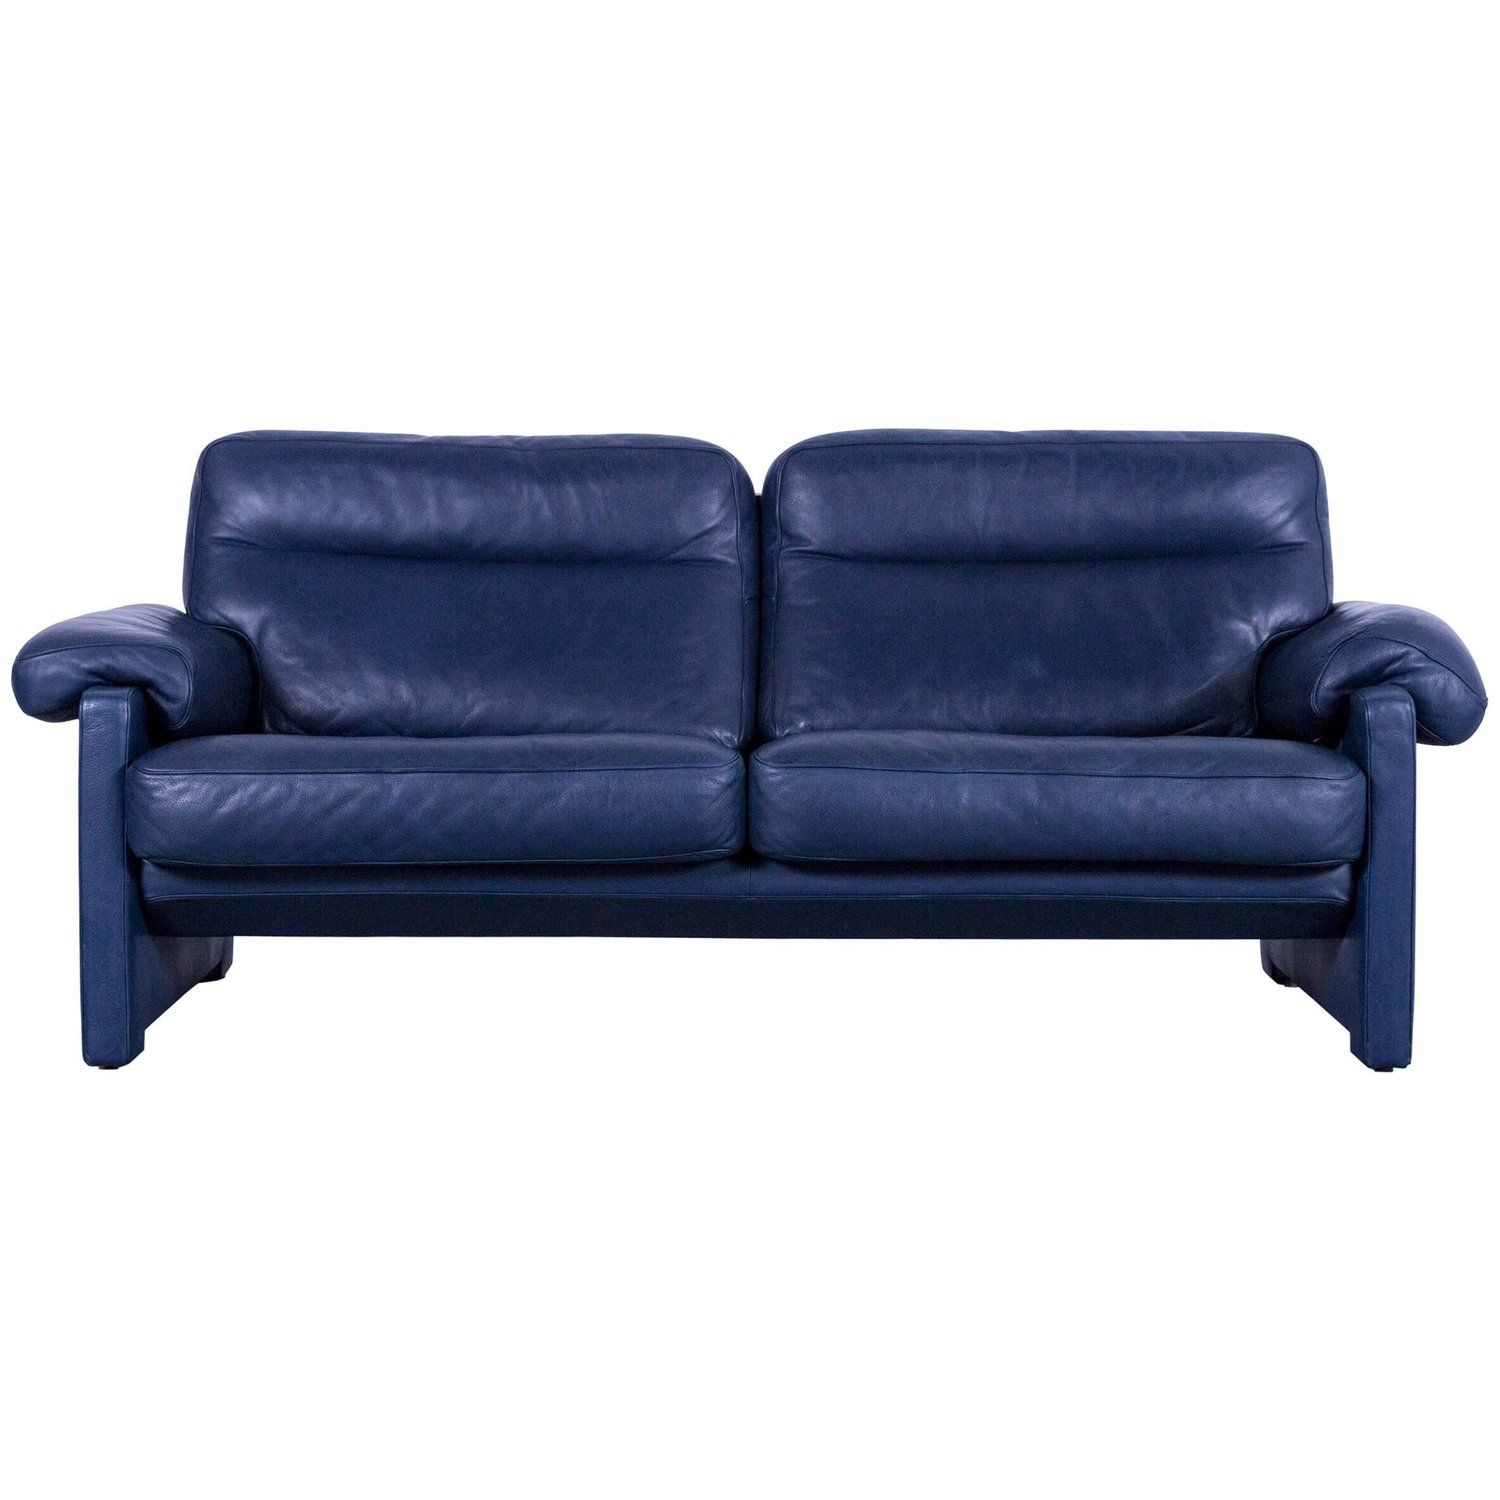 De Sede Ds 70 Designer Sofa Navy Blue Leather Two Seat Couch